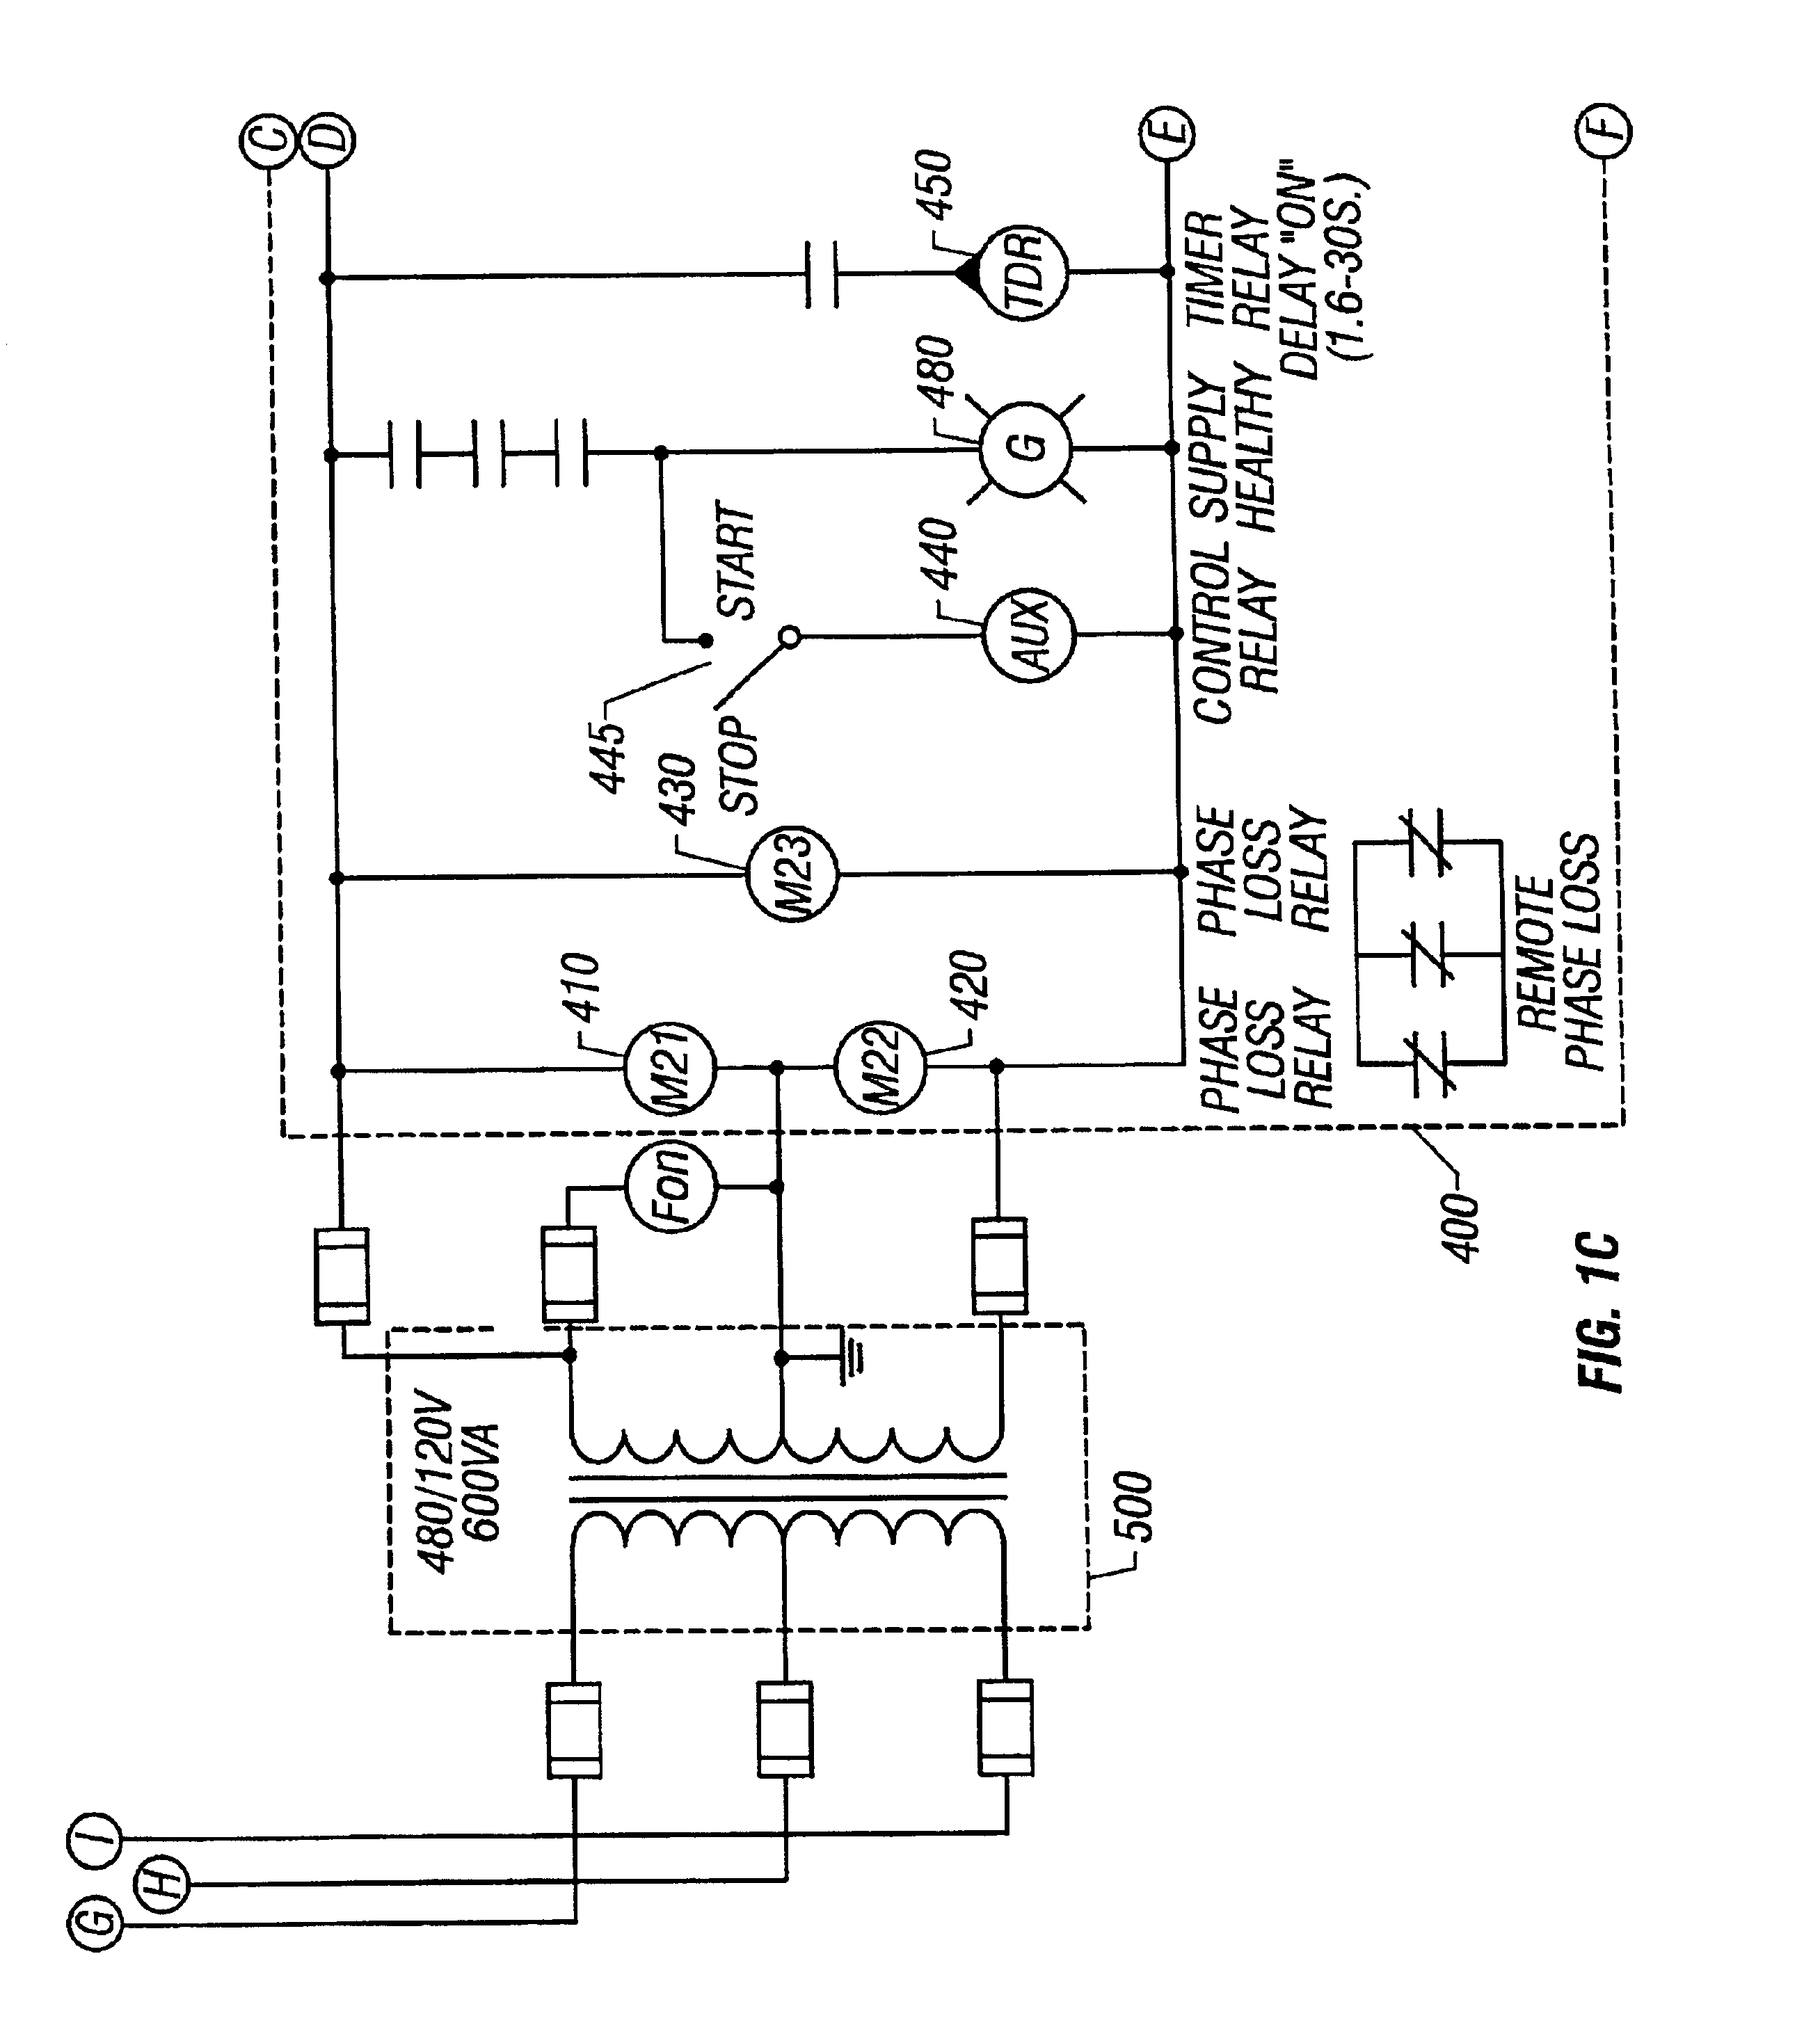 Patent Us6775117 Zero Threshold Surge Suppressor Google Patents Recommended Way To Protect A Circuit From Nontransient Overvoltage Drawing